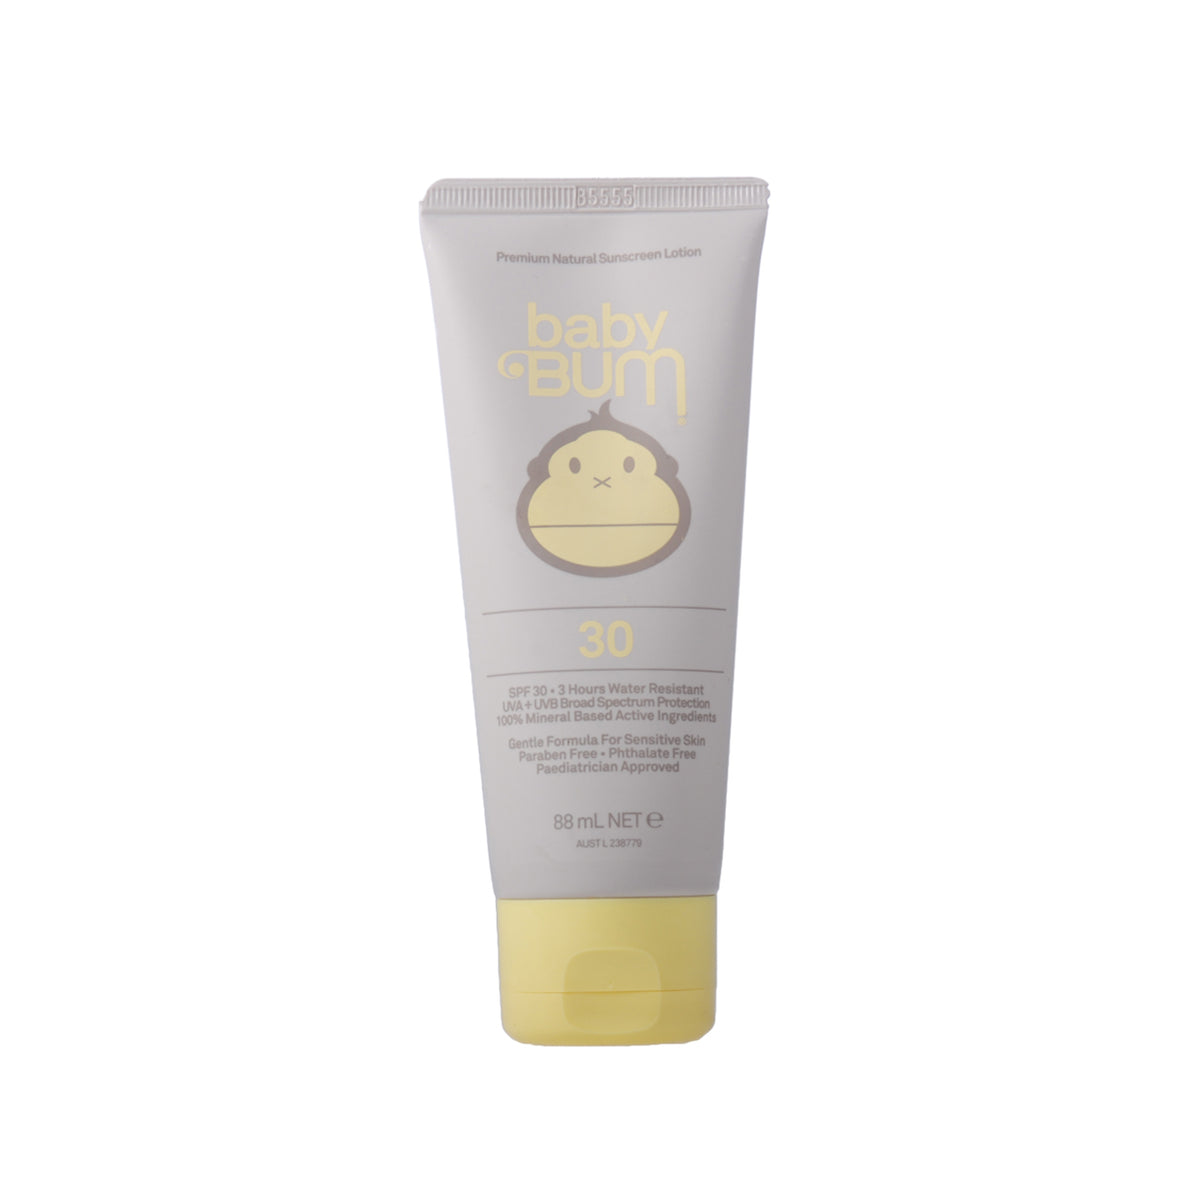 Sun Bum Baby Bum Sunscreen SPF 30 88ml